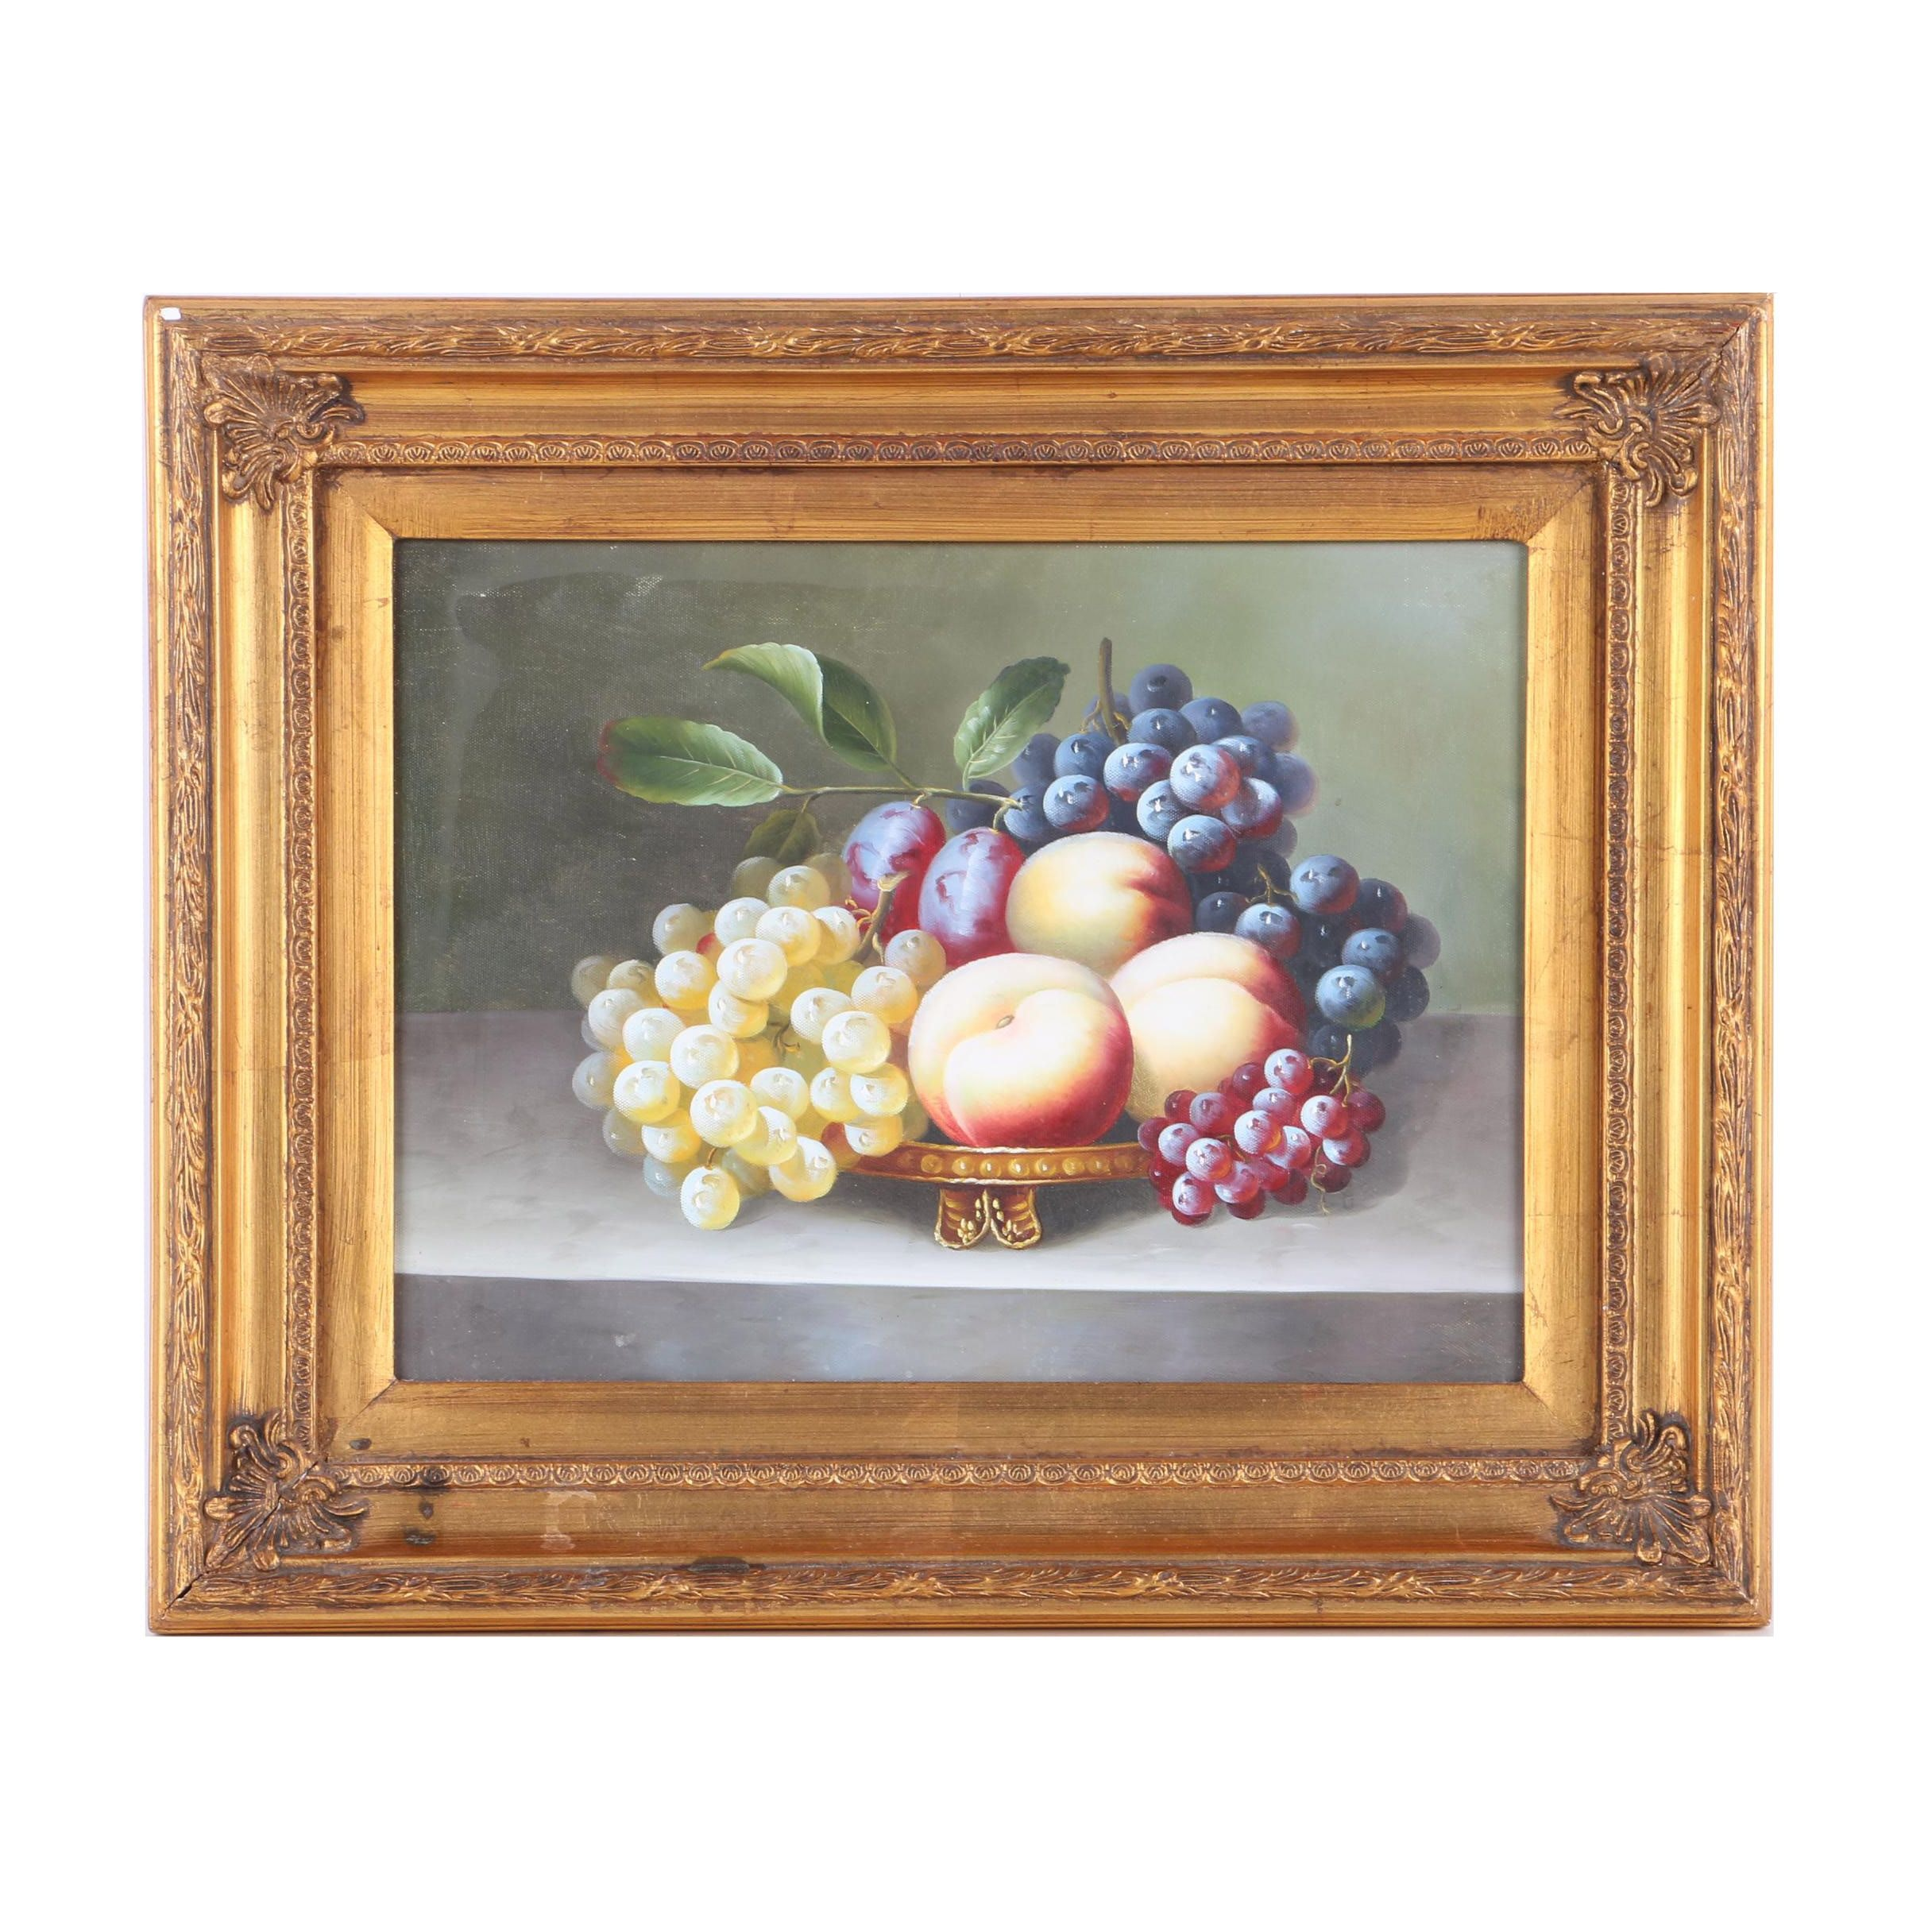 Oil Painting on Canvas of a Still Life with Fruit